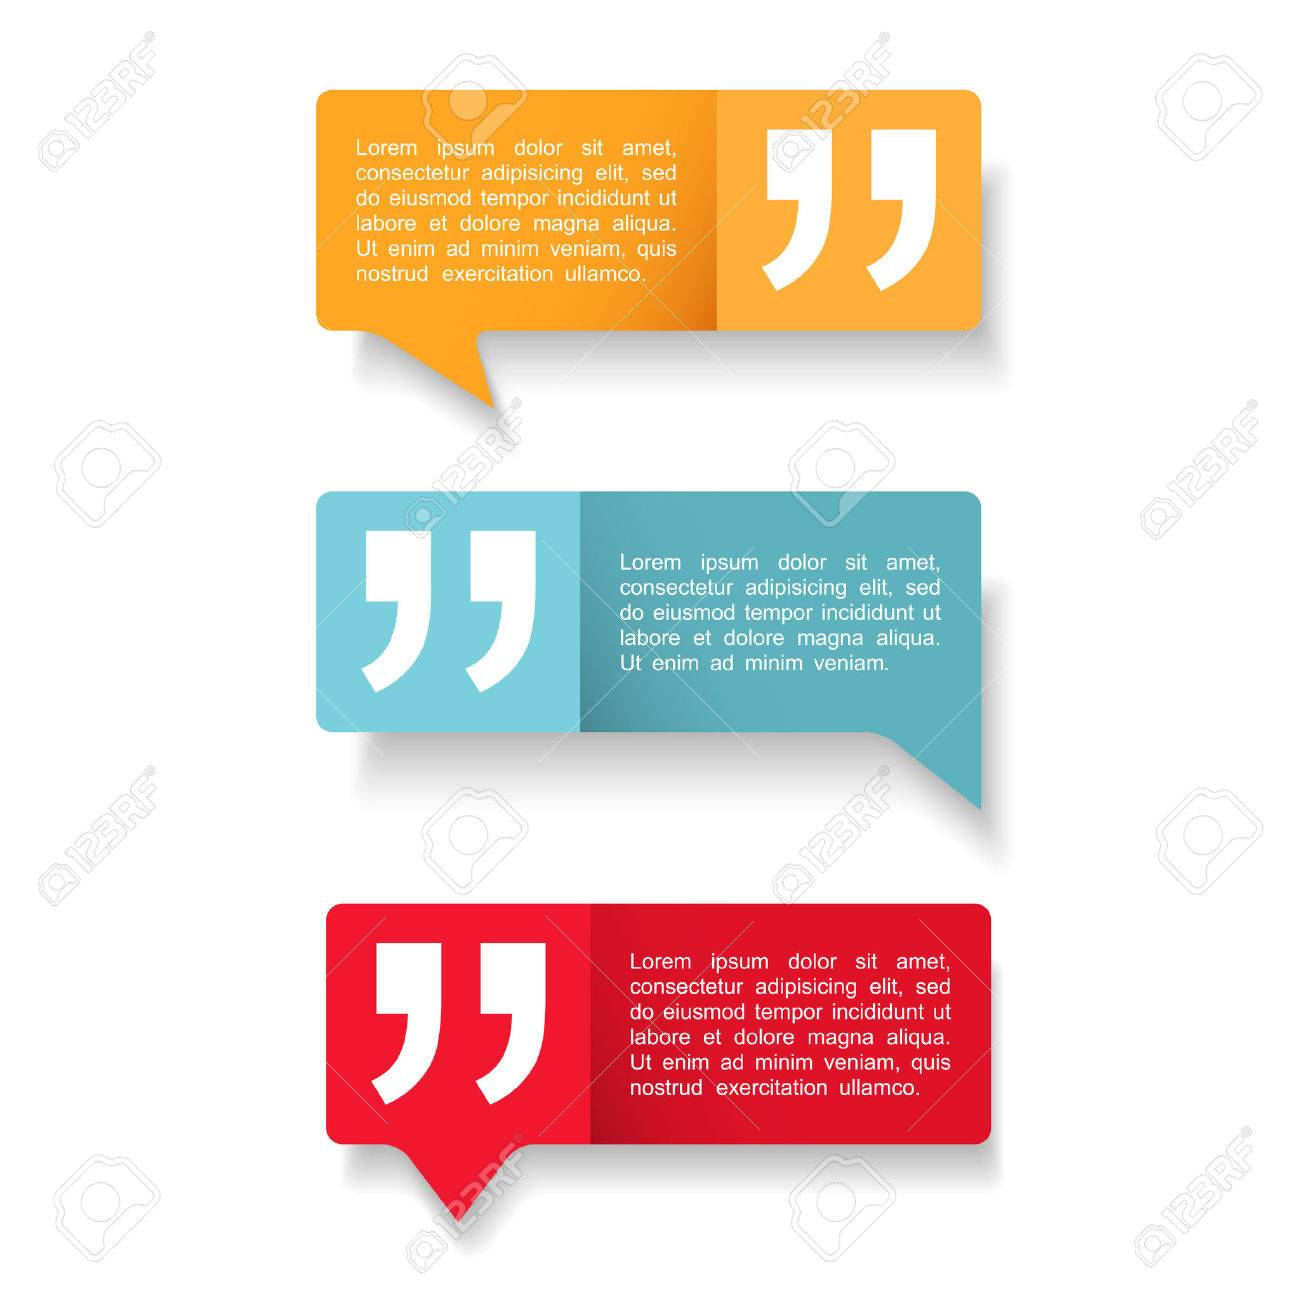 Speech Bubbles with quotes icon - 43889256